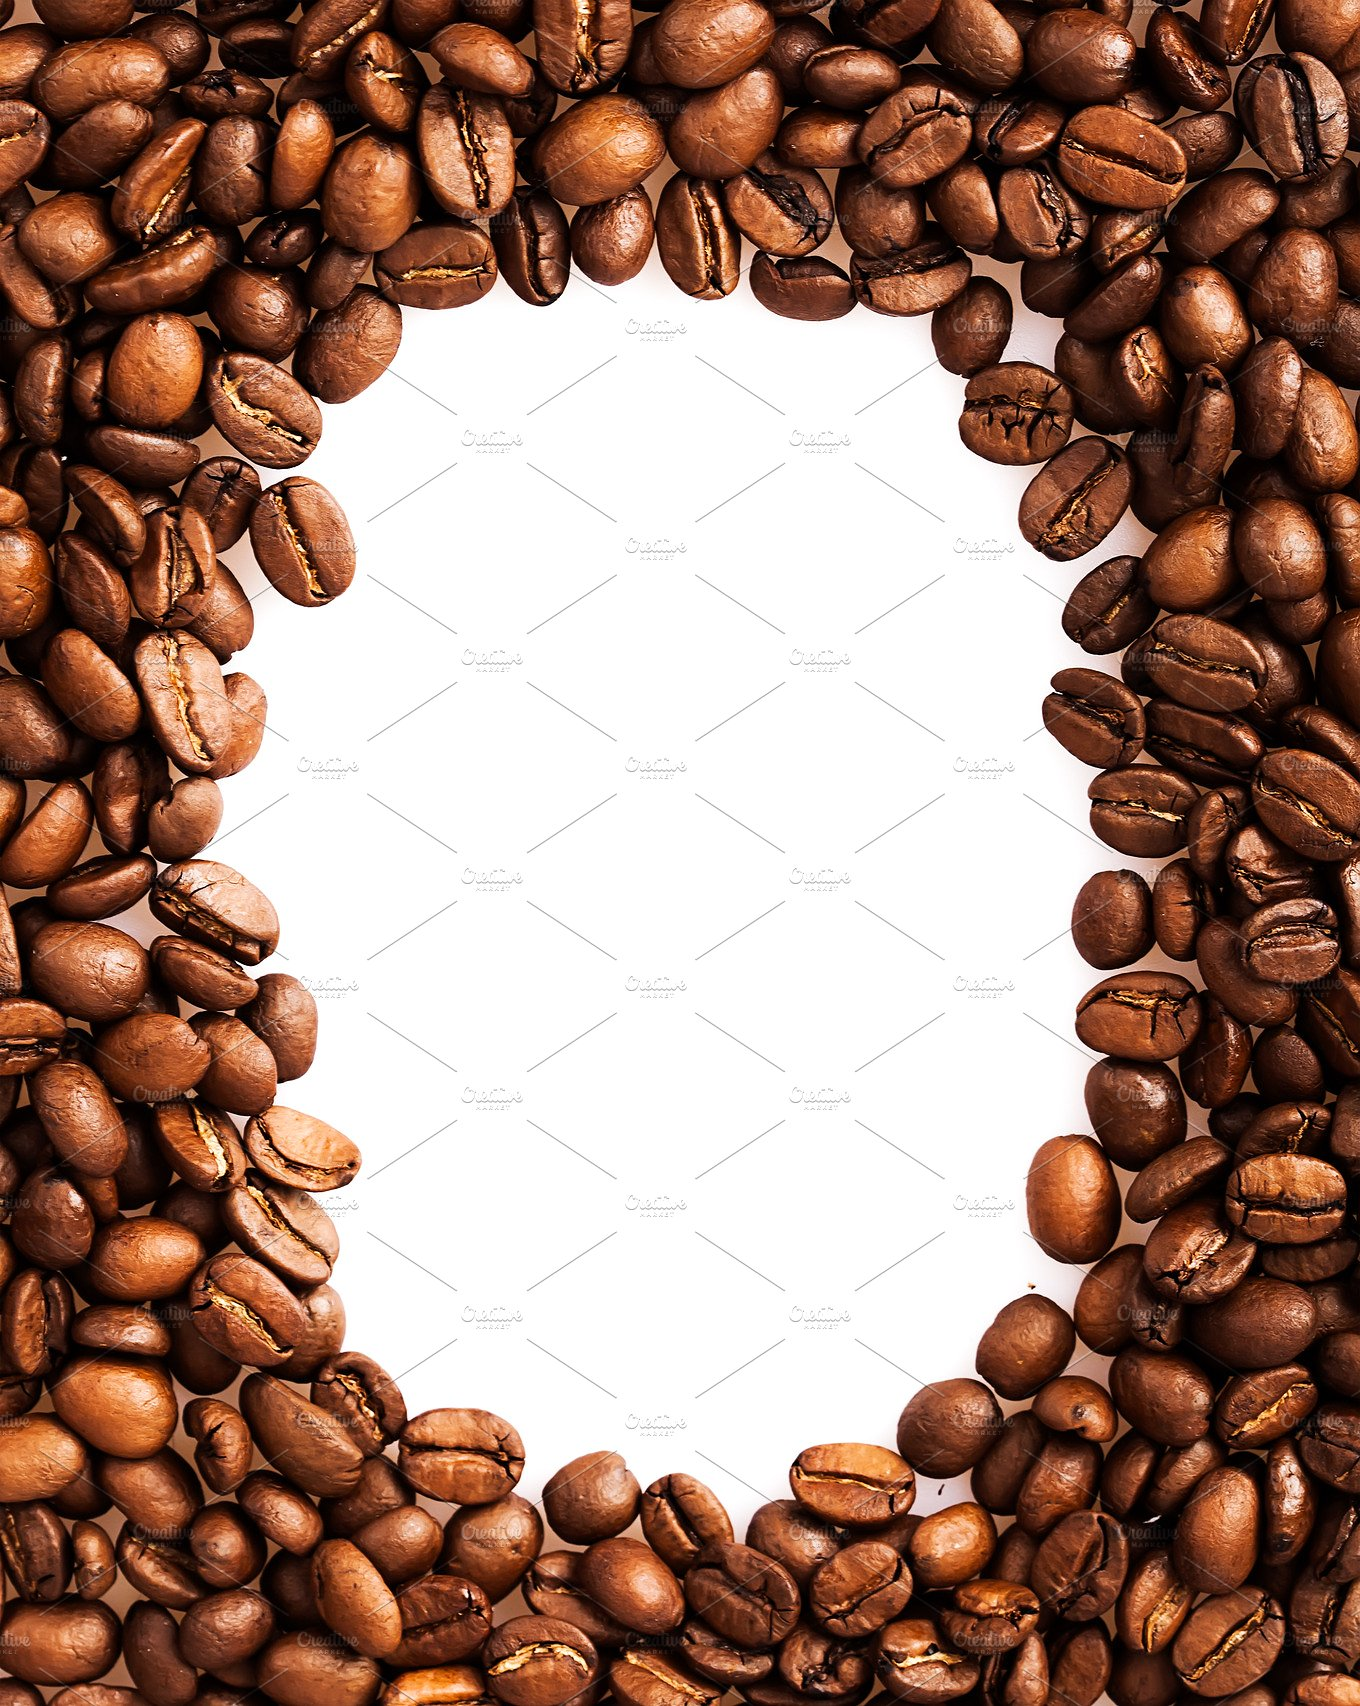 Coffee beans frame background ~ Food & Drink Photos ~ Creative Market